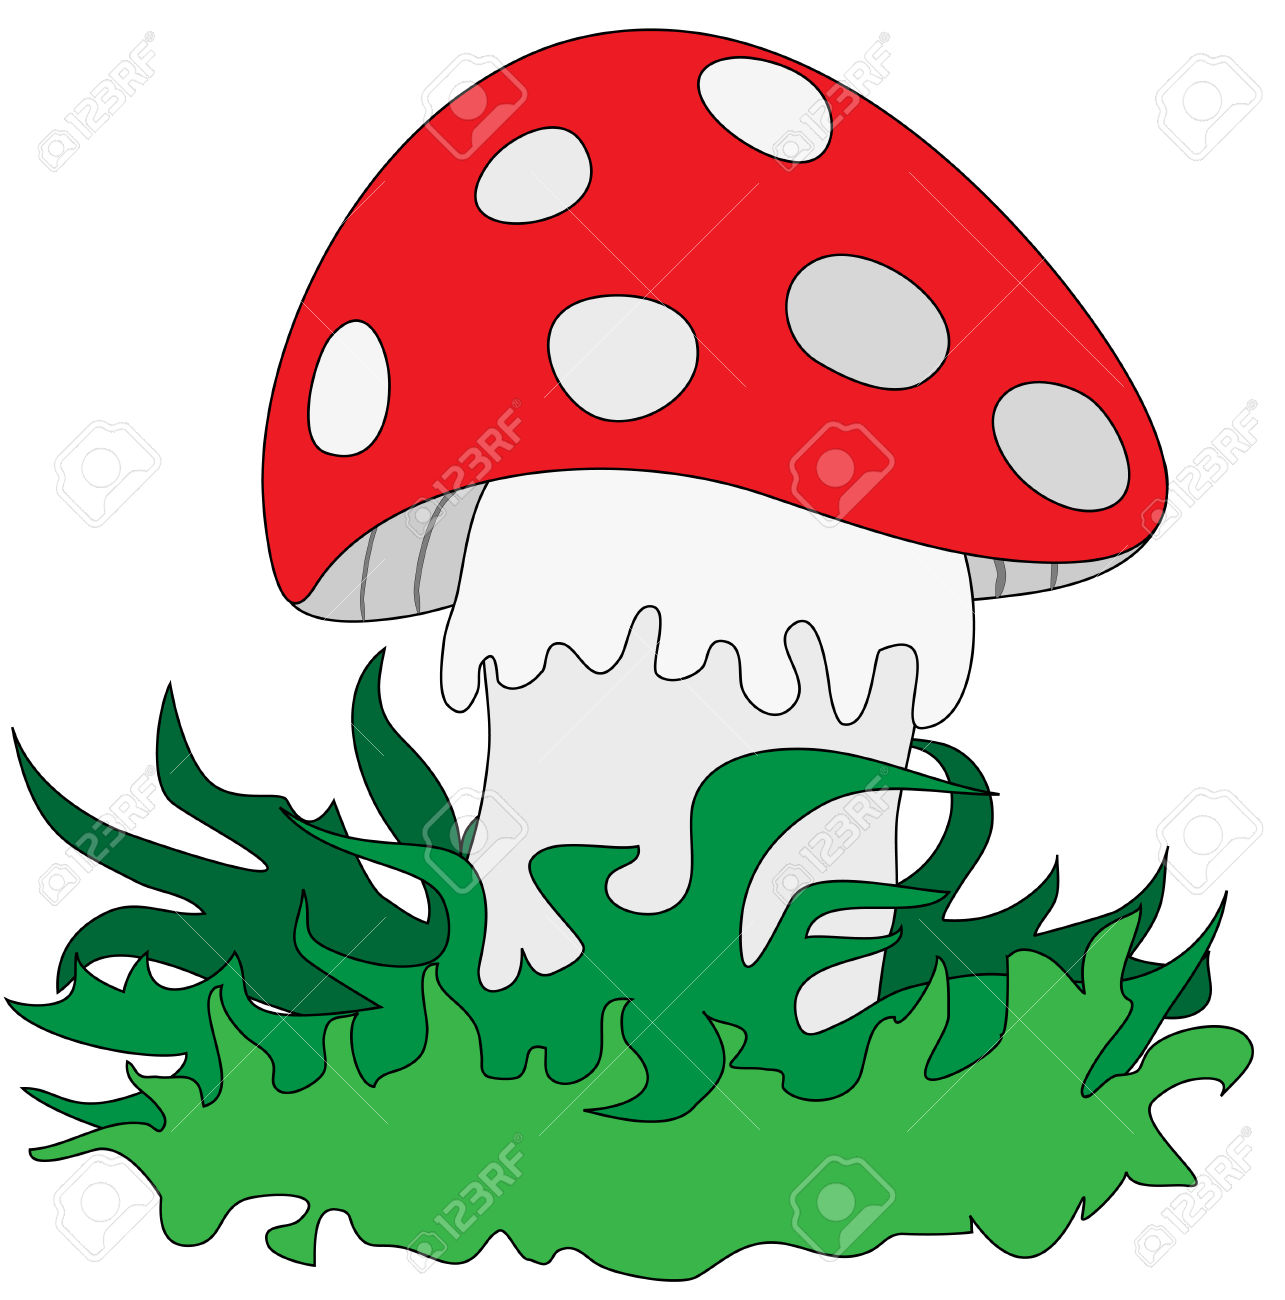 Amanita In The Grass On A White Background Royalty Free Cliparts.